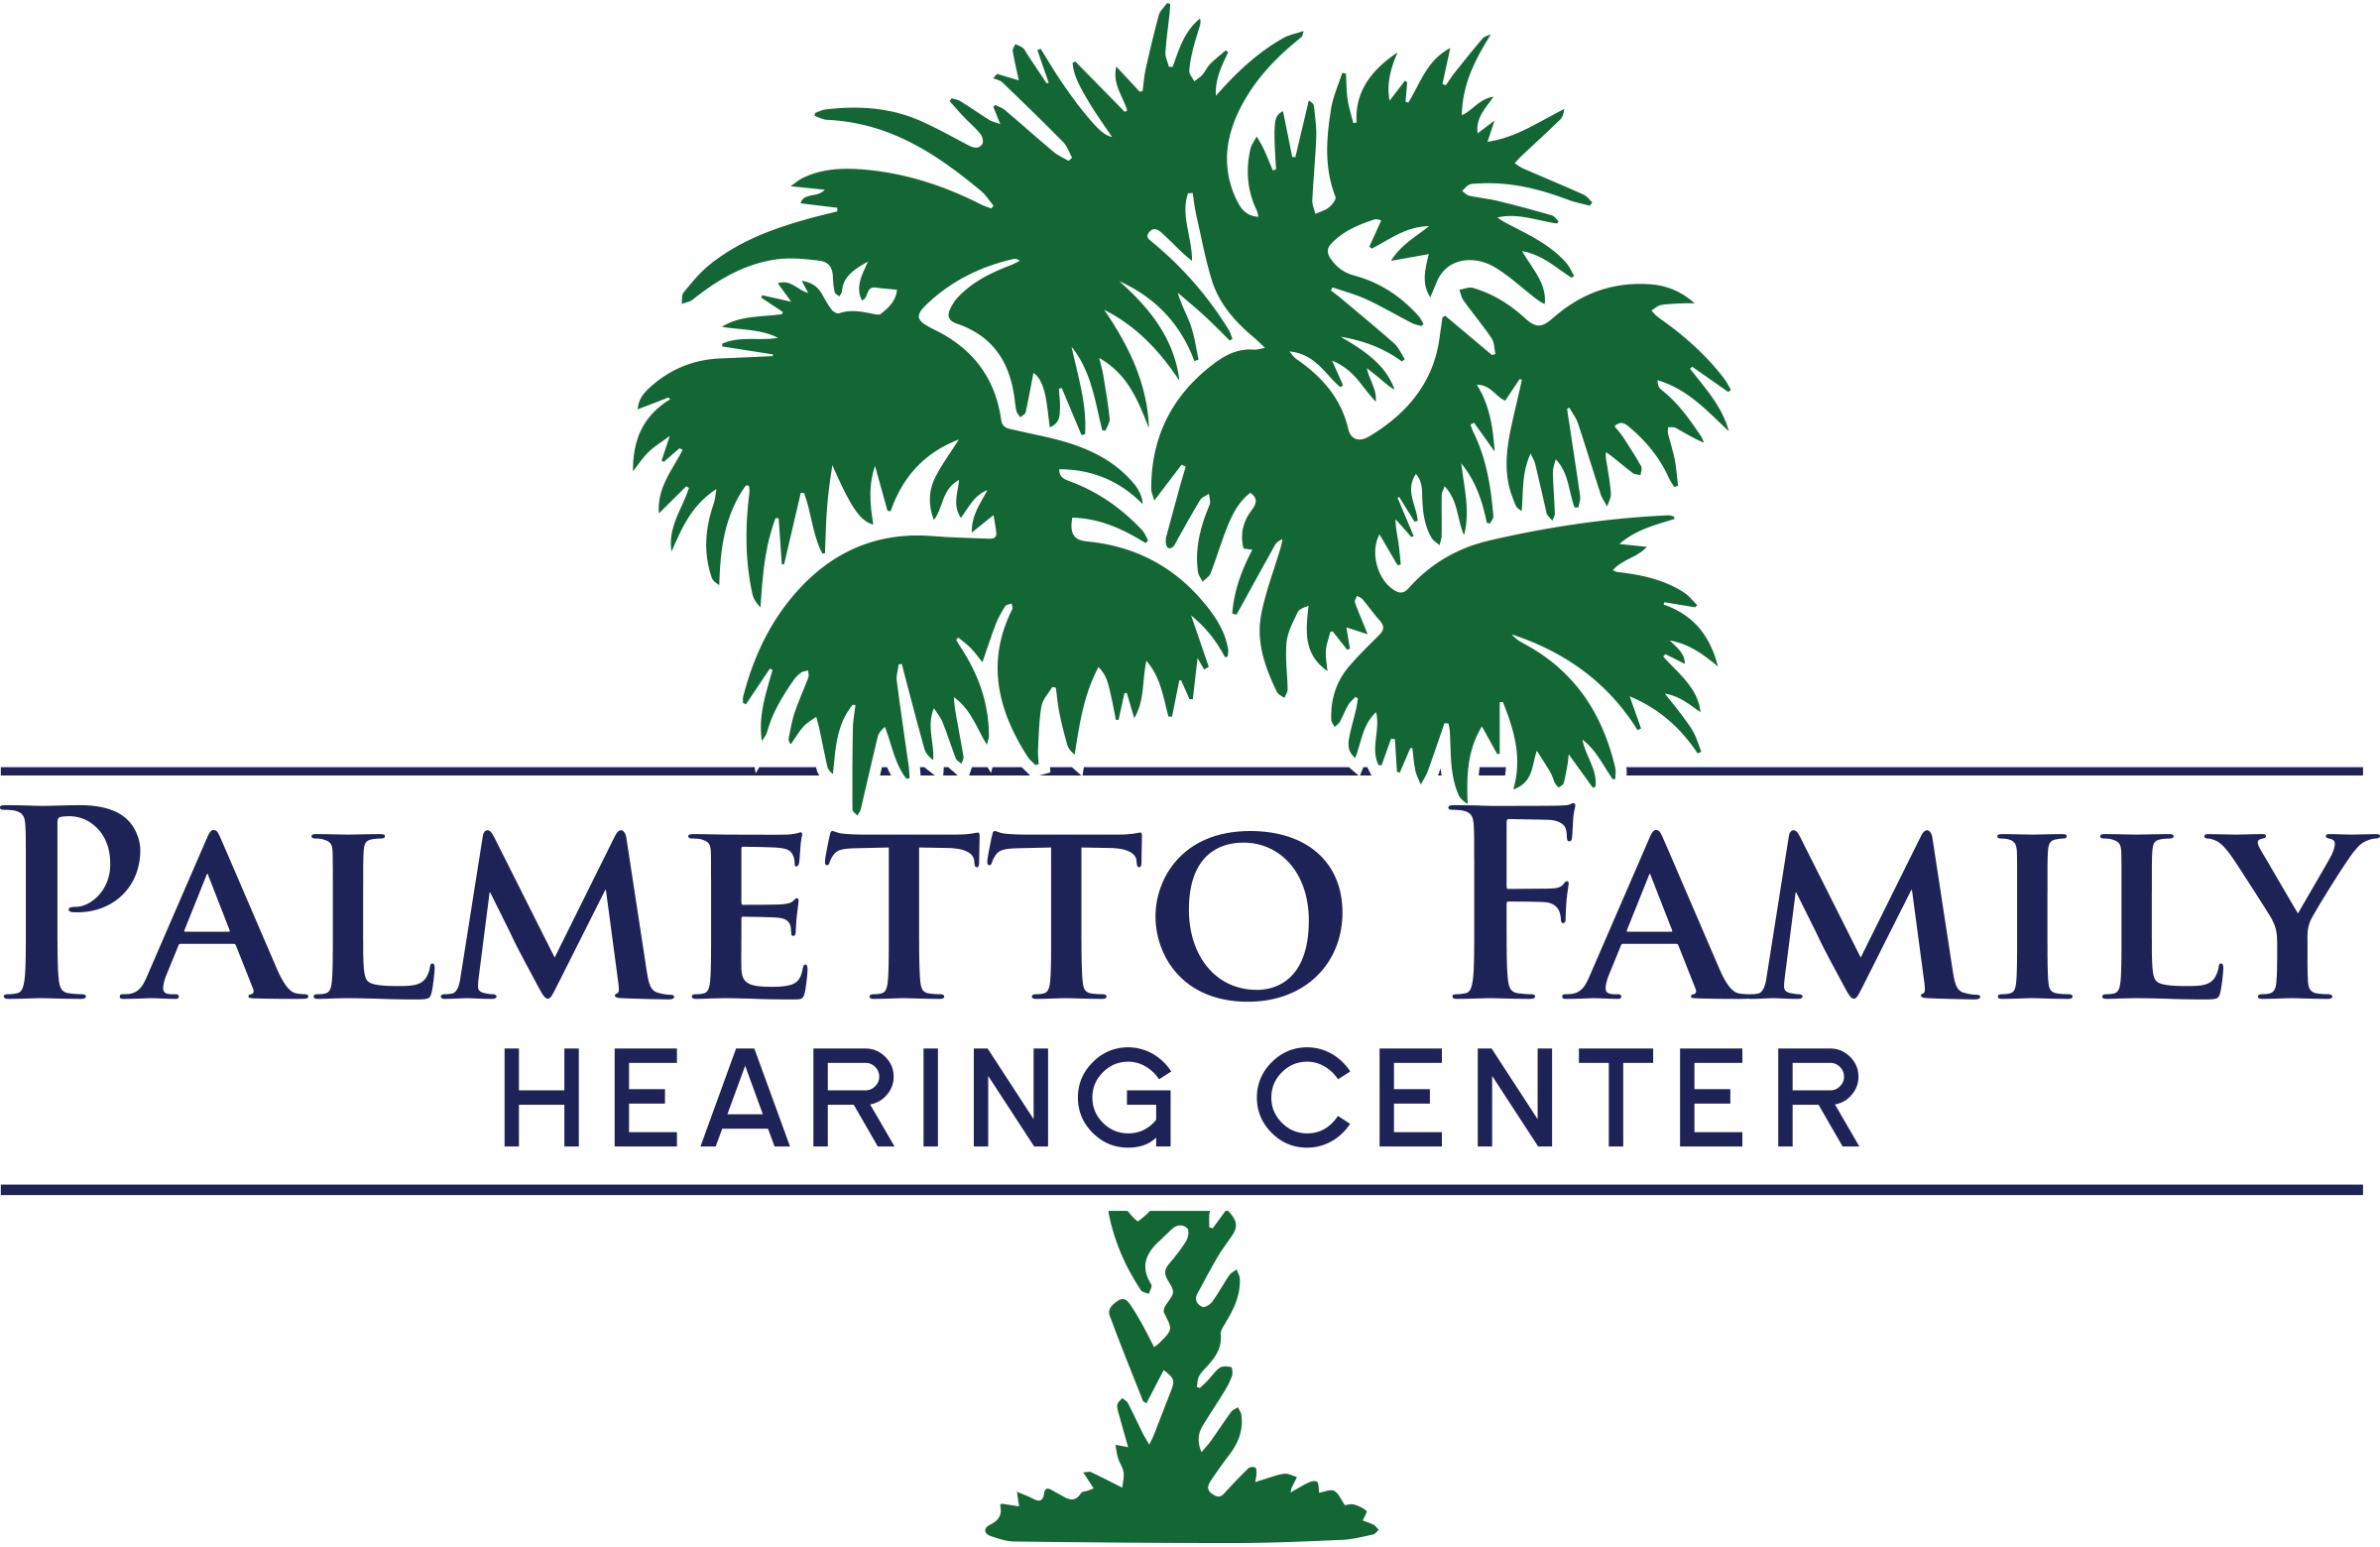 Palmetto Family Hearing Center logo